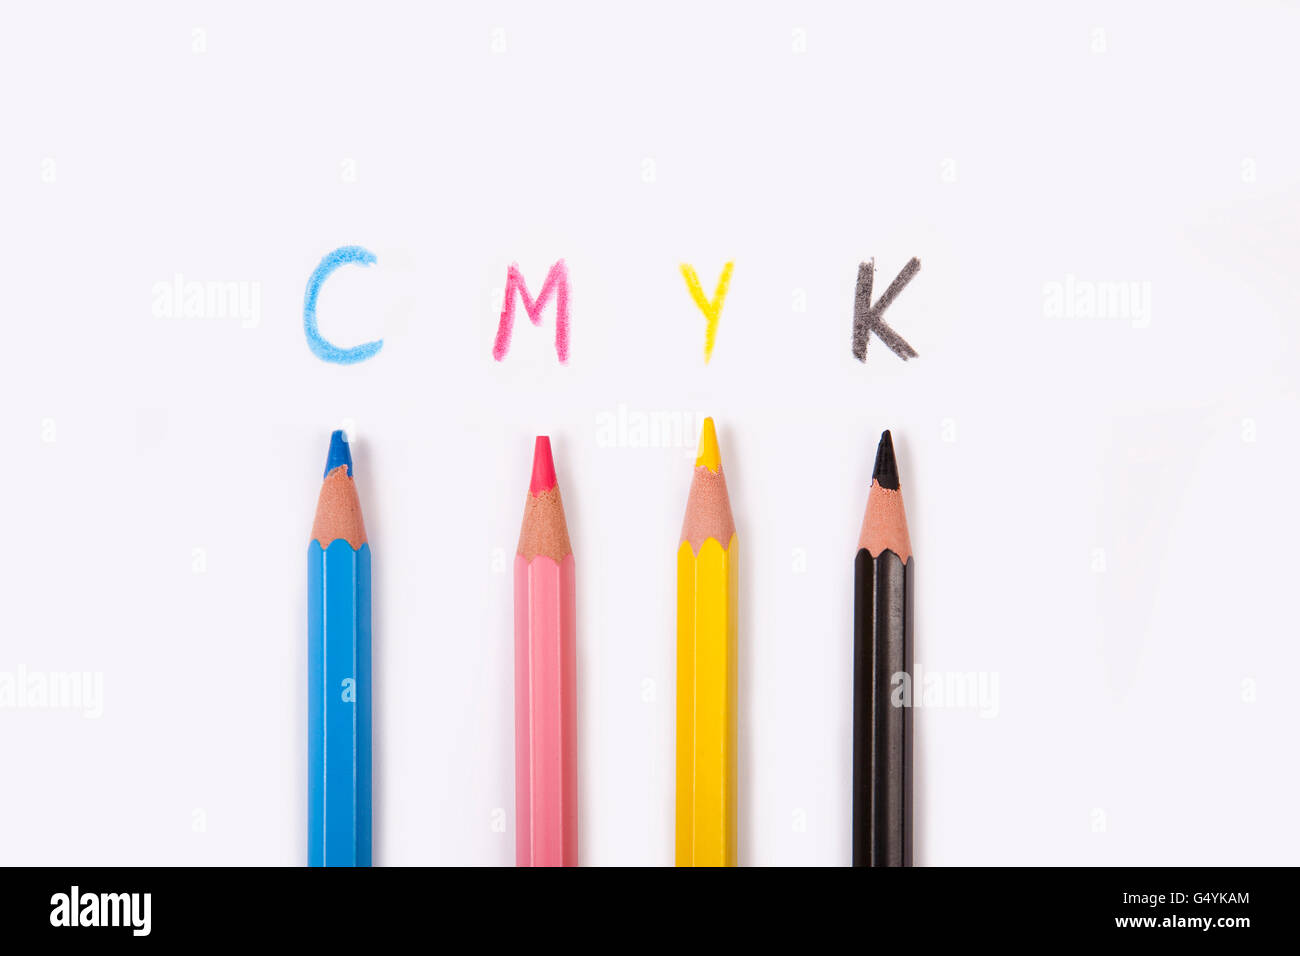 conceptual cmyk background, prepress colors from pencils - Stock Image